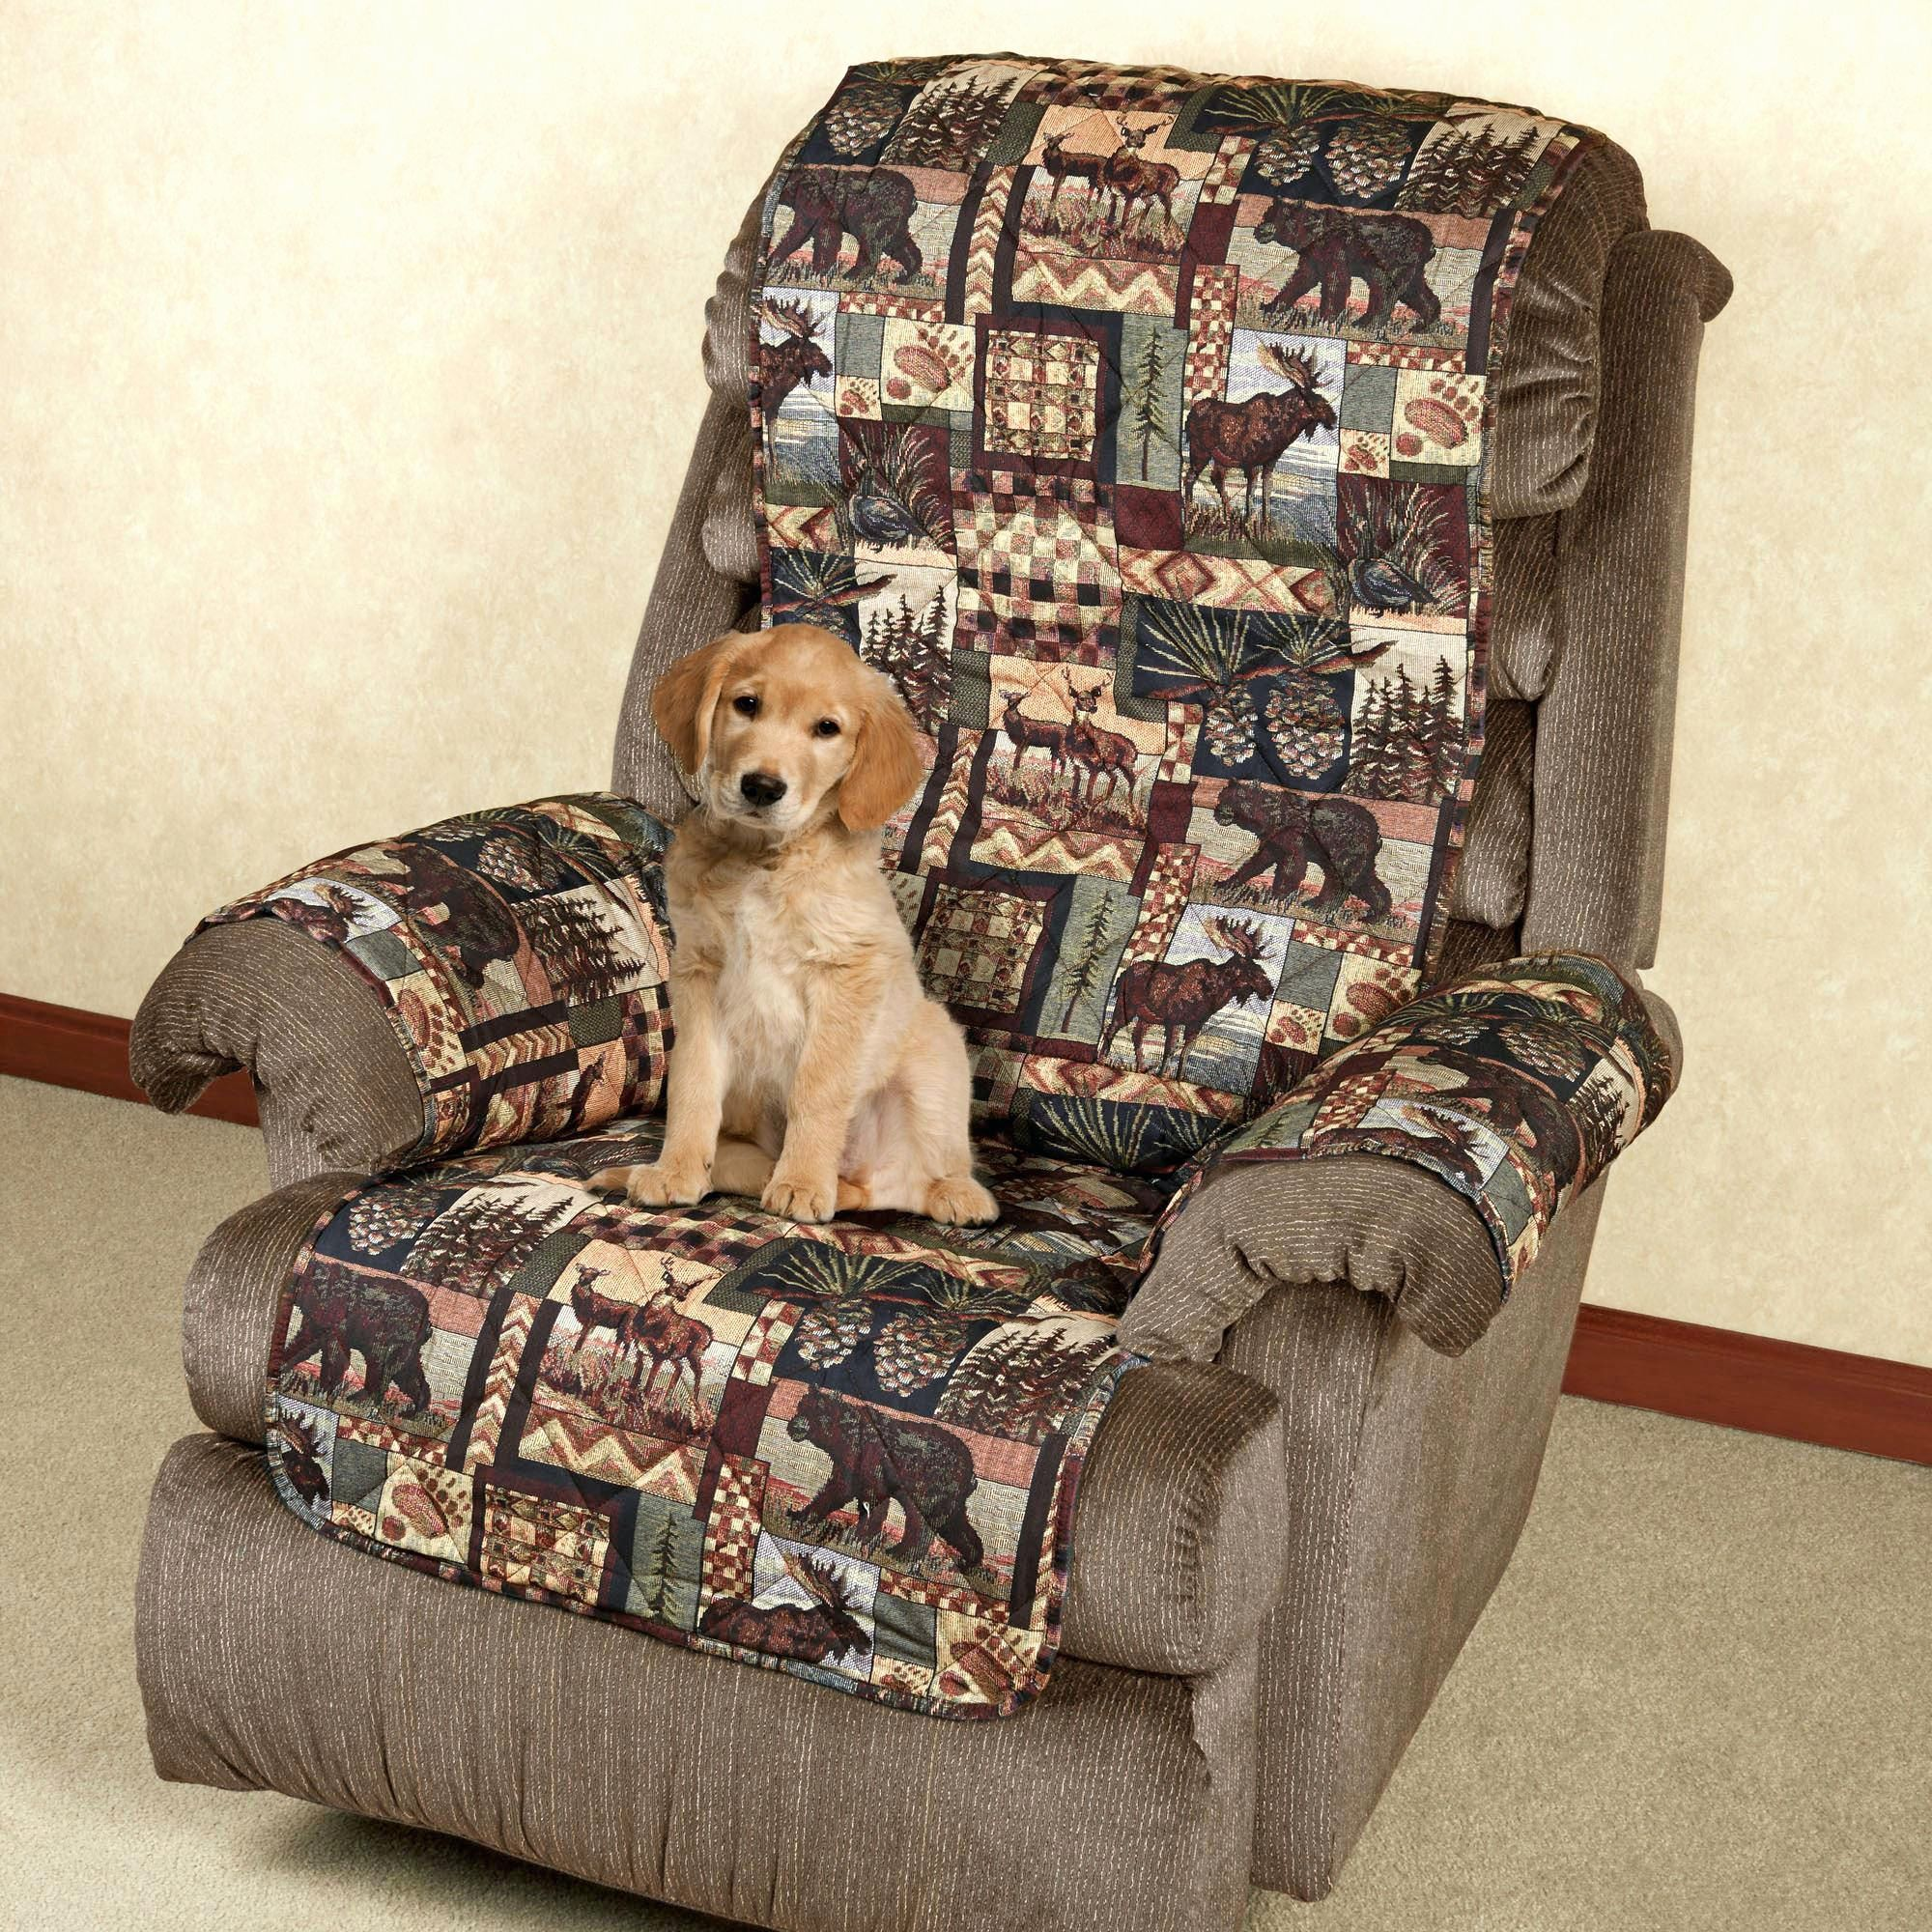 Good Pet sofa Cover that Stays In Place Pics pet sofa